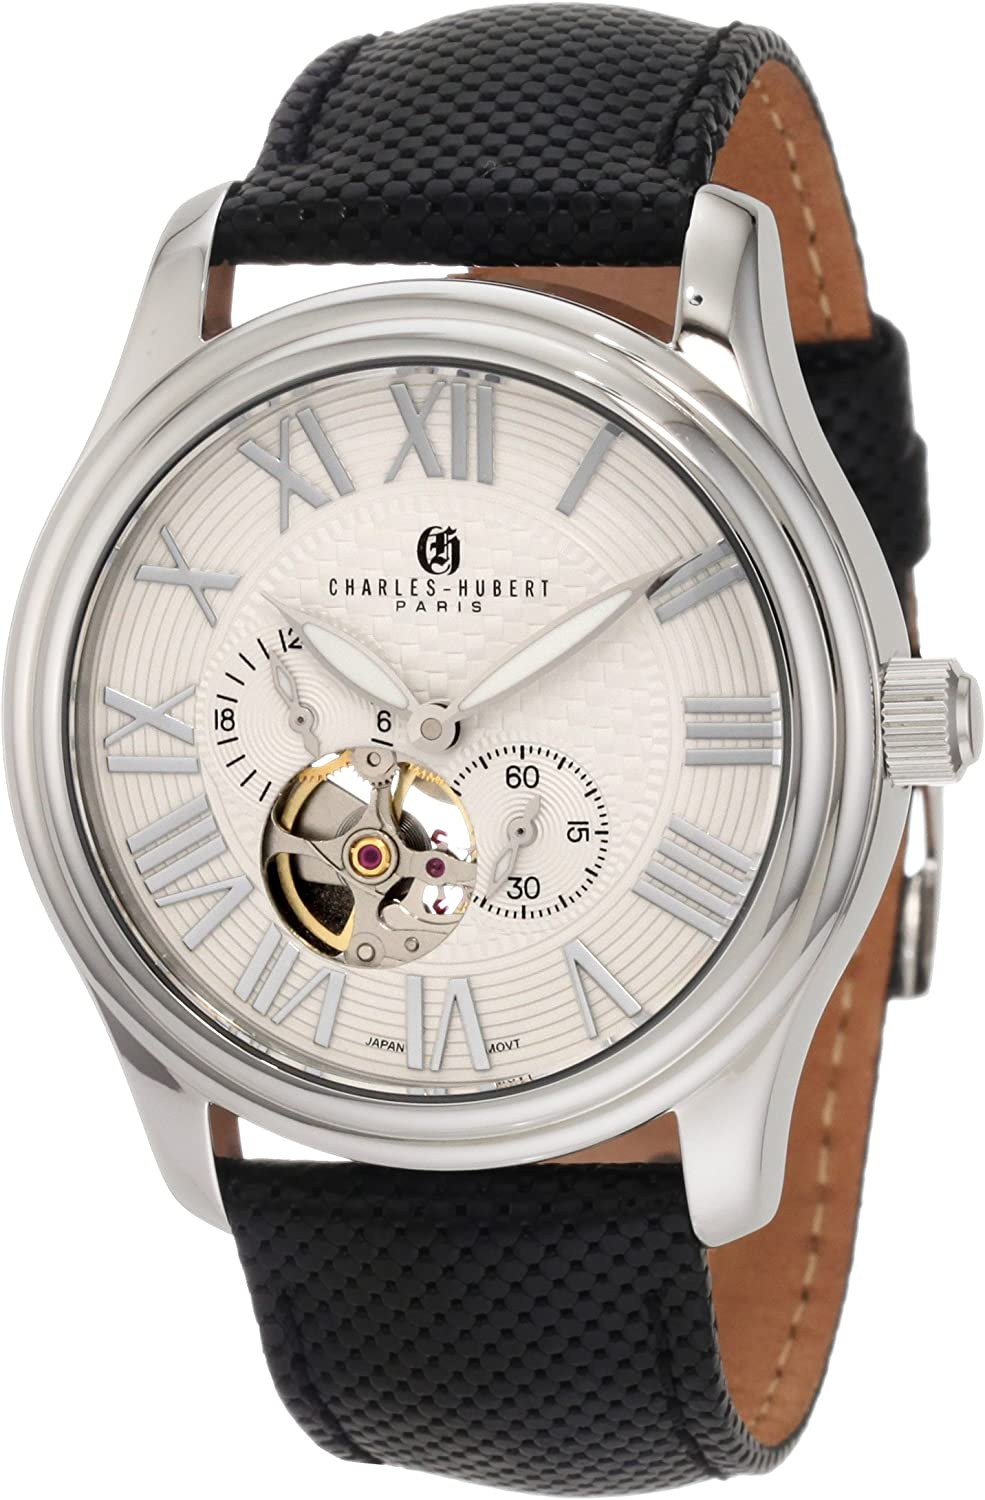 Charles-Hubert, Paris Men s 3894-W Premium Collection Stainless Steel Automatic Watch